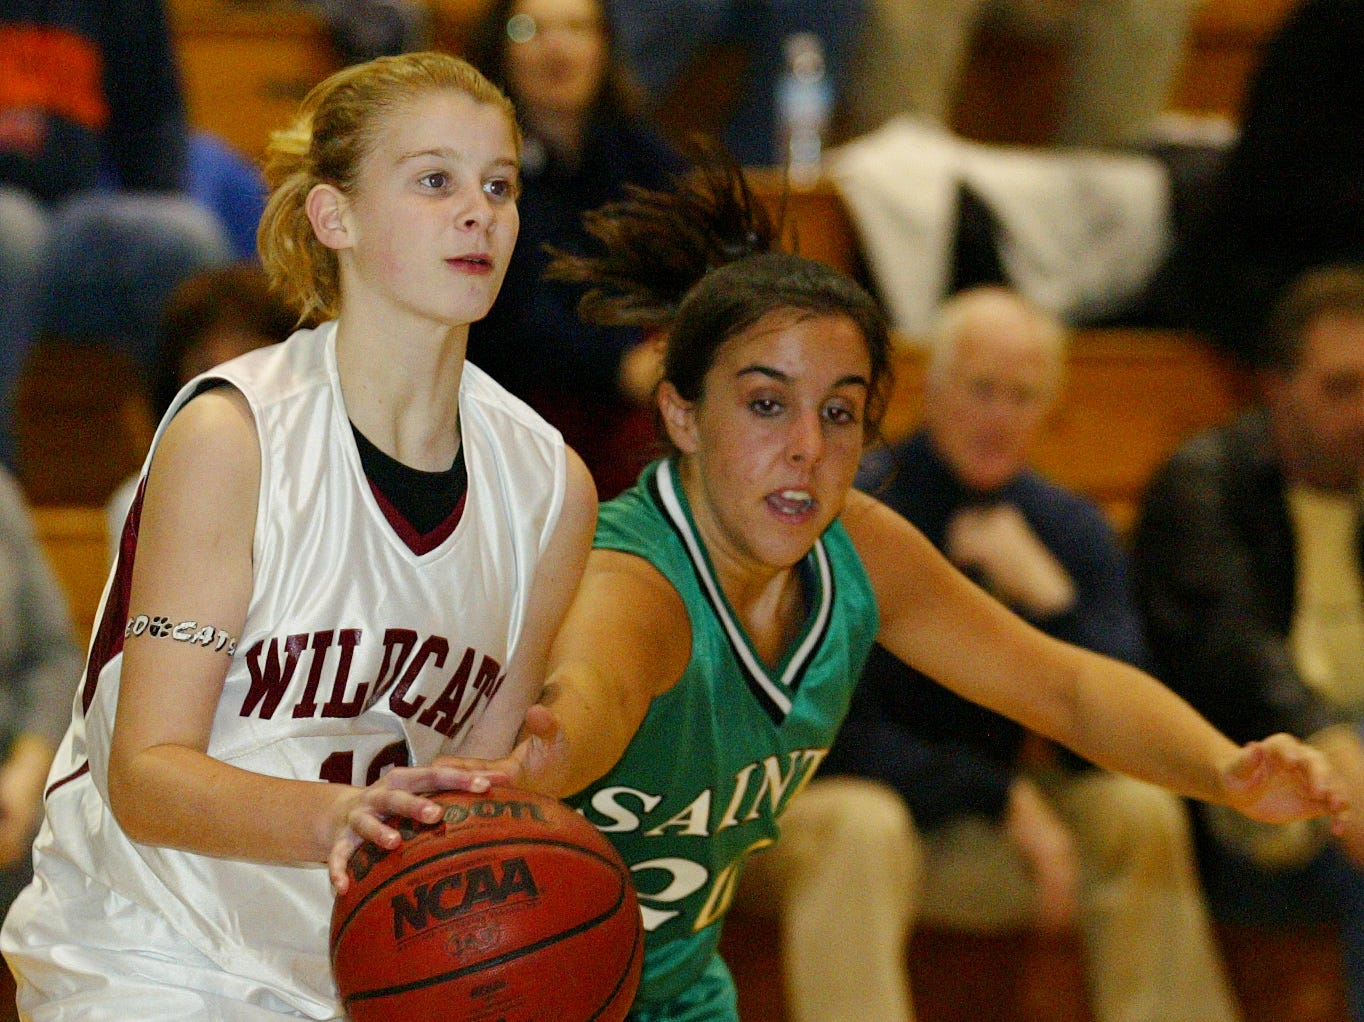 2005: Johnson City's Emily McSain loses control of the basketball as Seton Catholic Central's Kristen Yesensky makes the move in the second period, Wednesday at Johnson City High School.